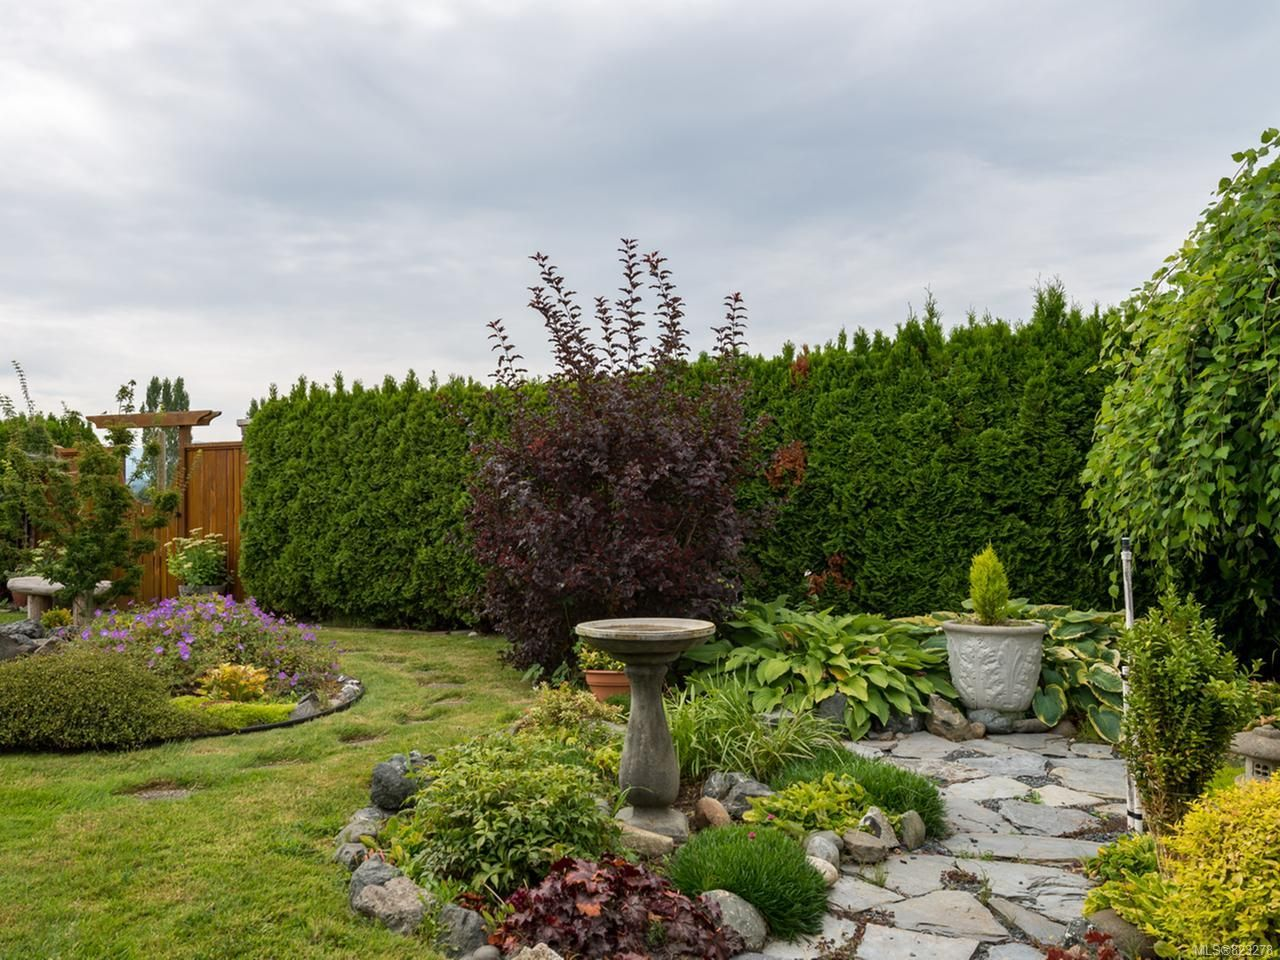 Photo 4: Photos: 1099 Williams Rd in COURTENAY: CV Courtenay East House for sale (Comox Valley)  : MLS®# 823278